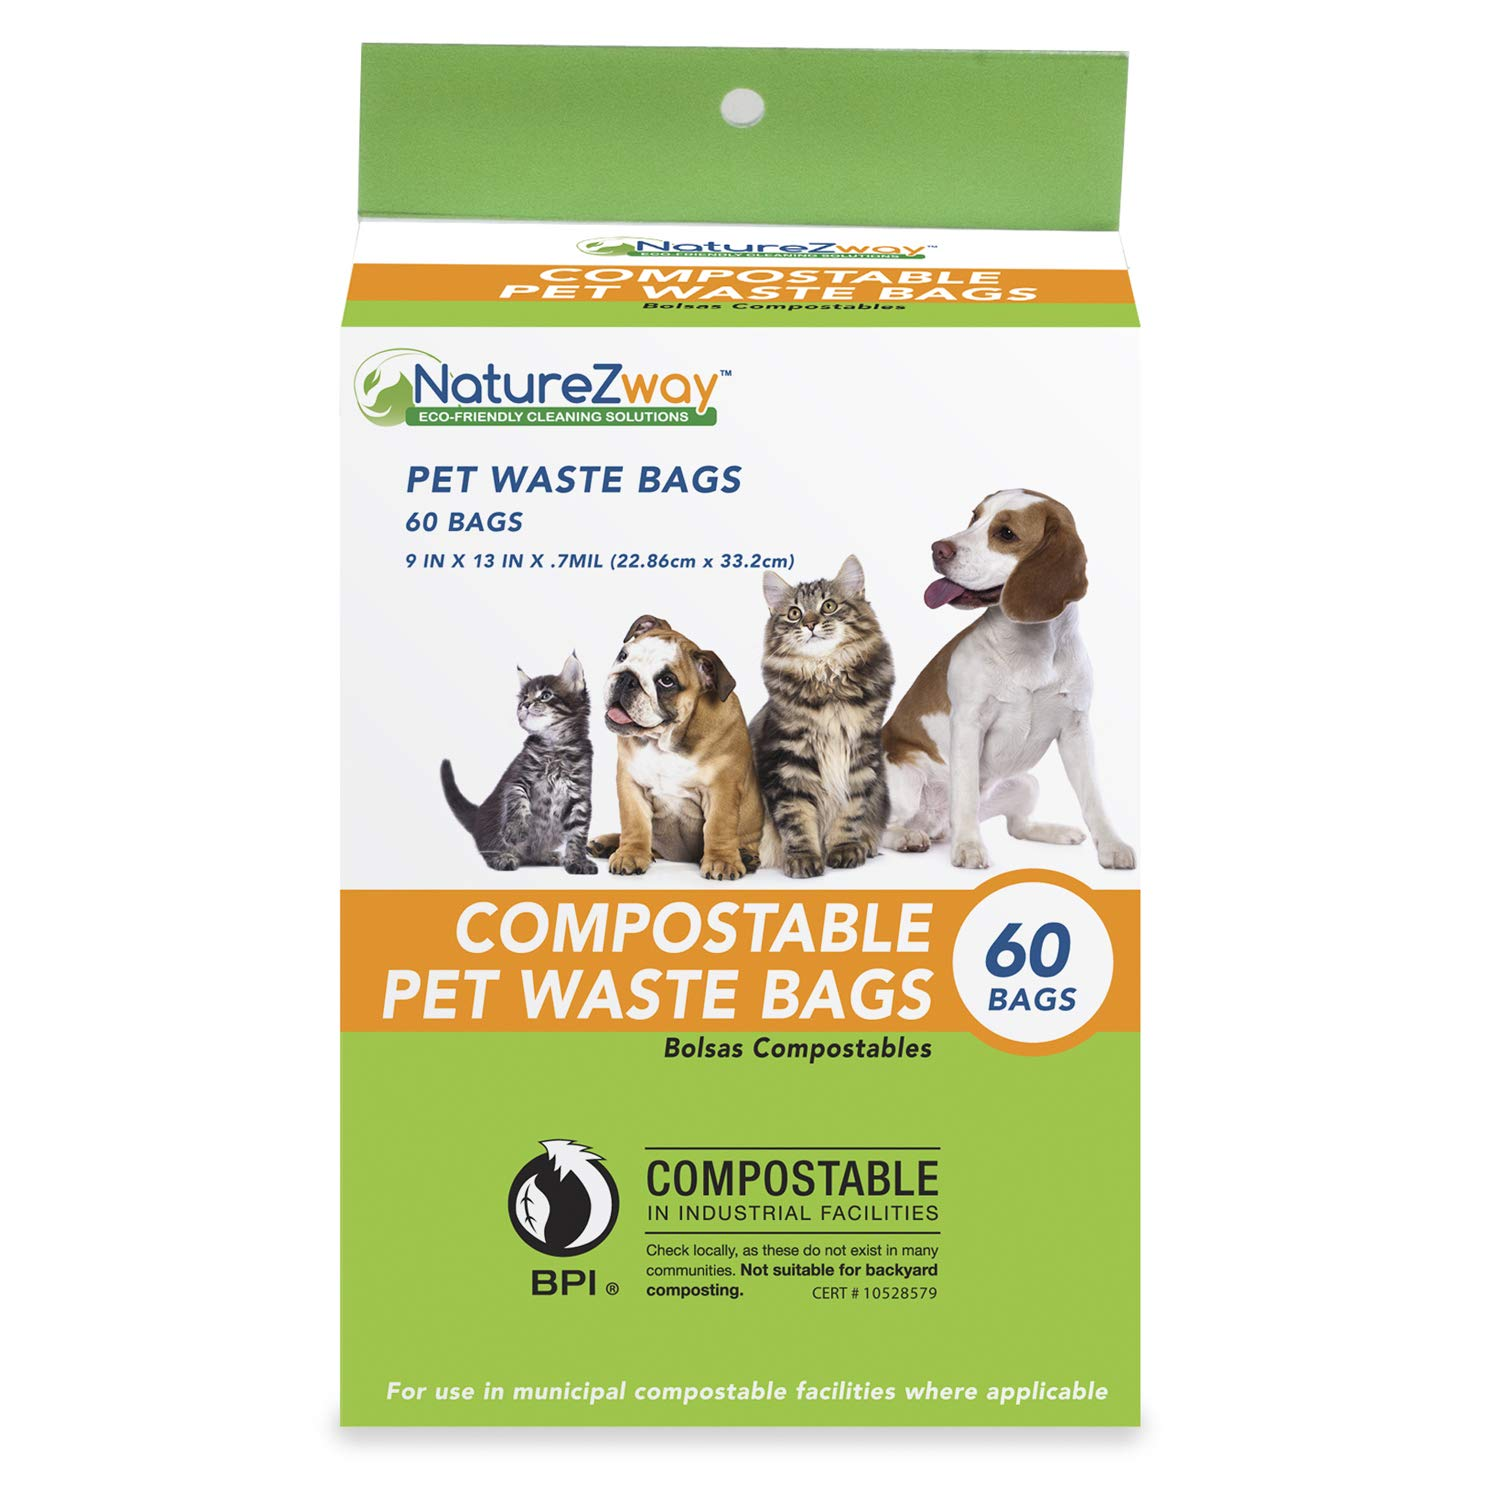 Amazon.com: NatureZway Pet Waste Bags (60 Bags): Industrial ...